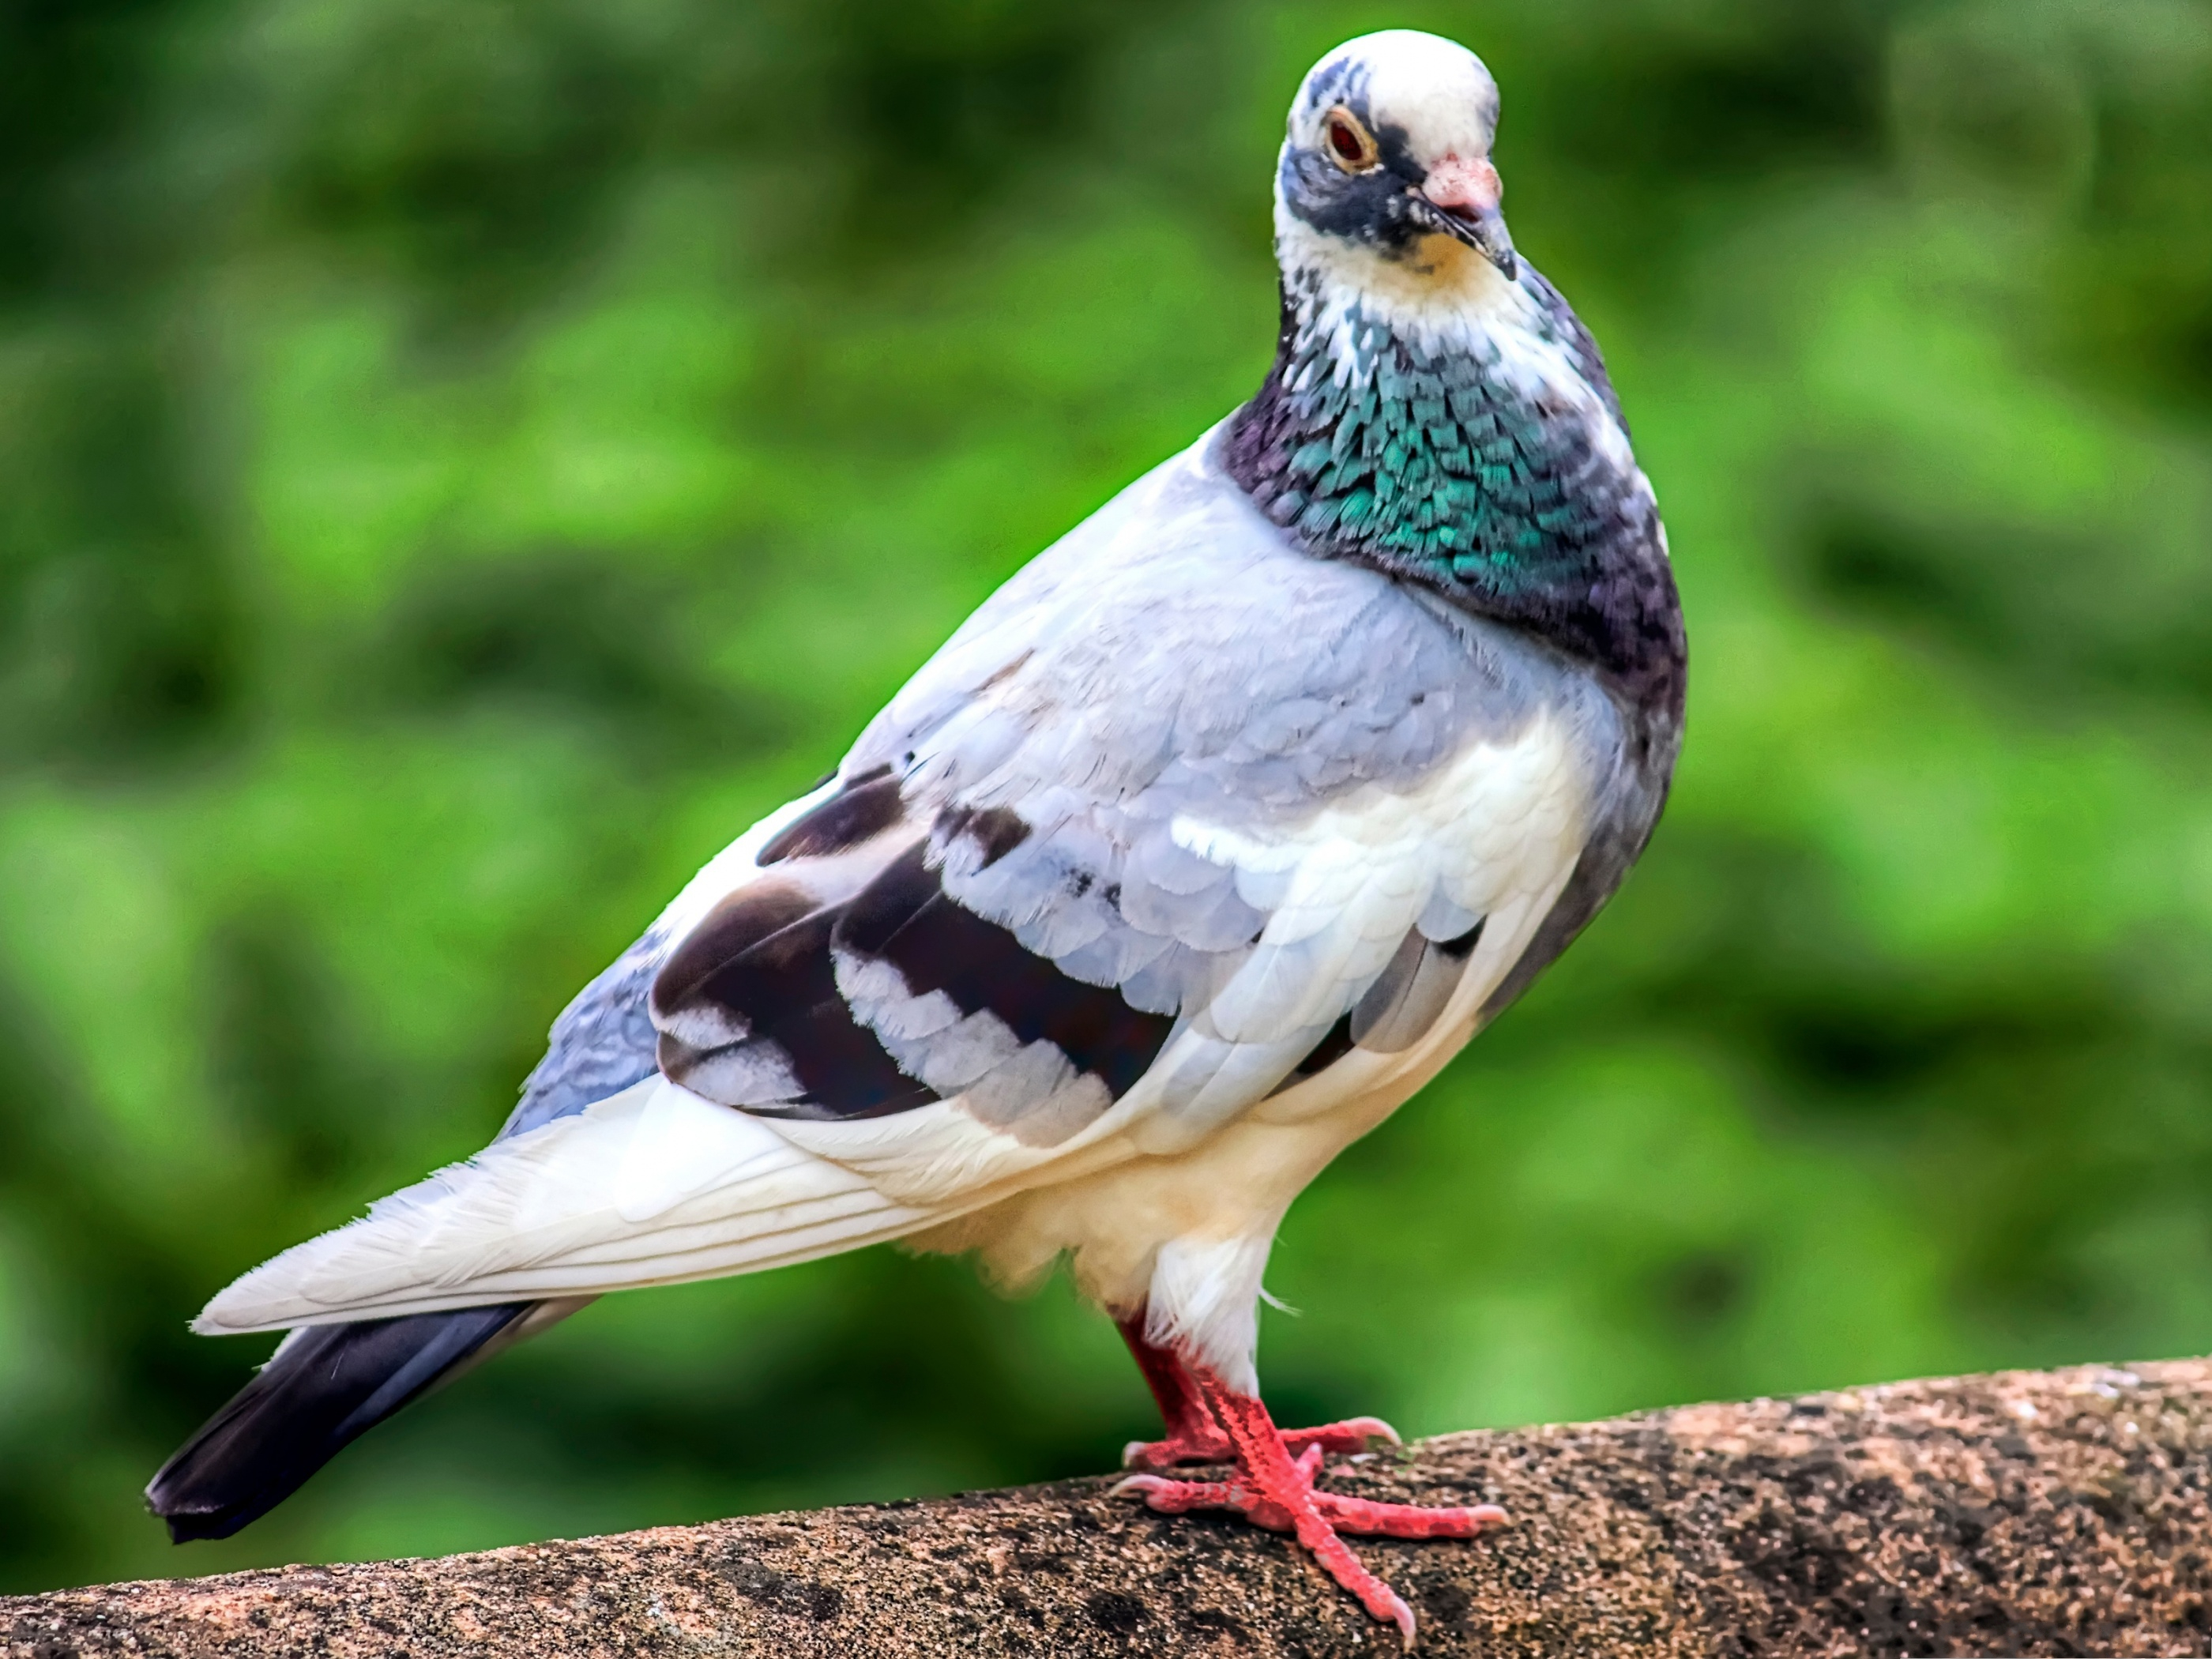 Colorful Pigeon Bird Photography Wallpaper HQ Photo